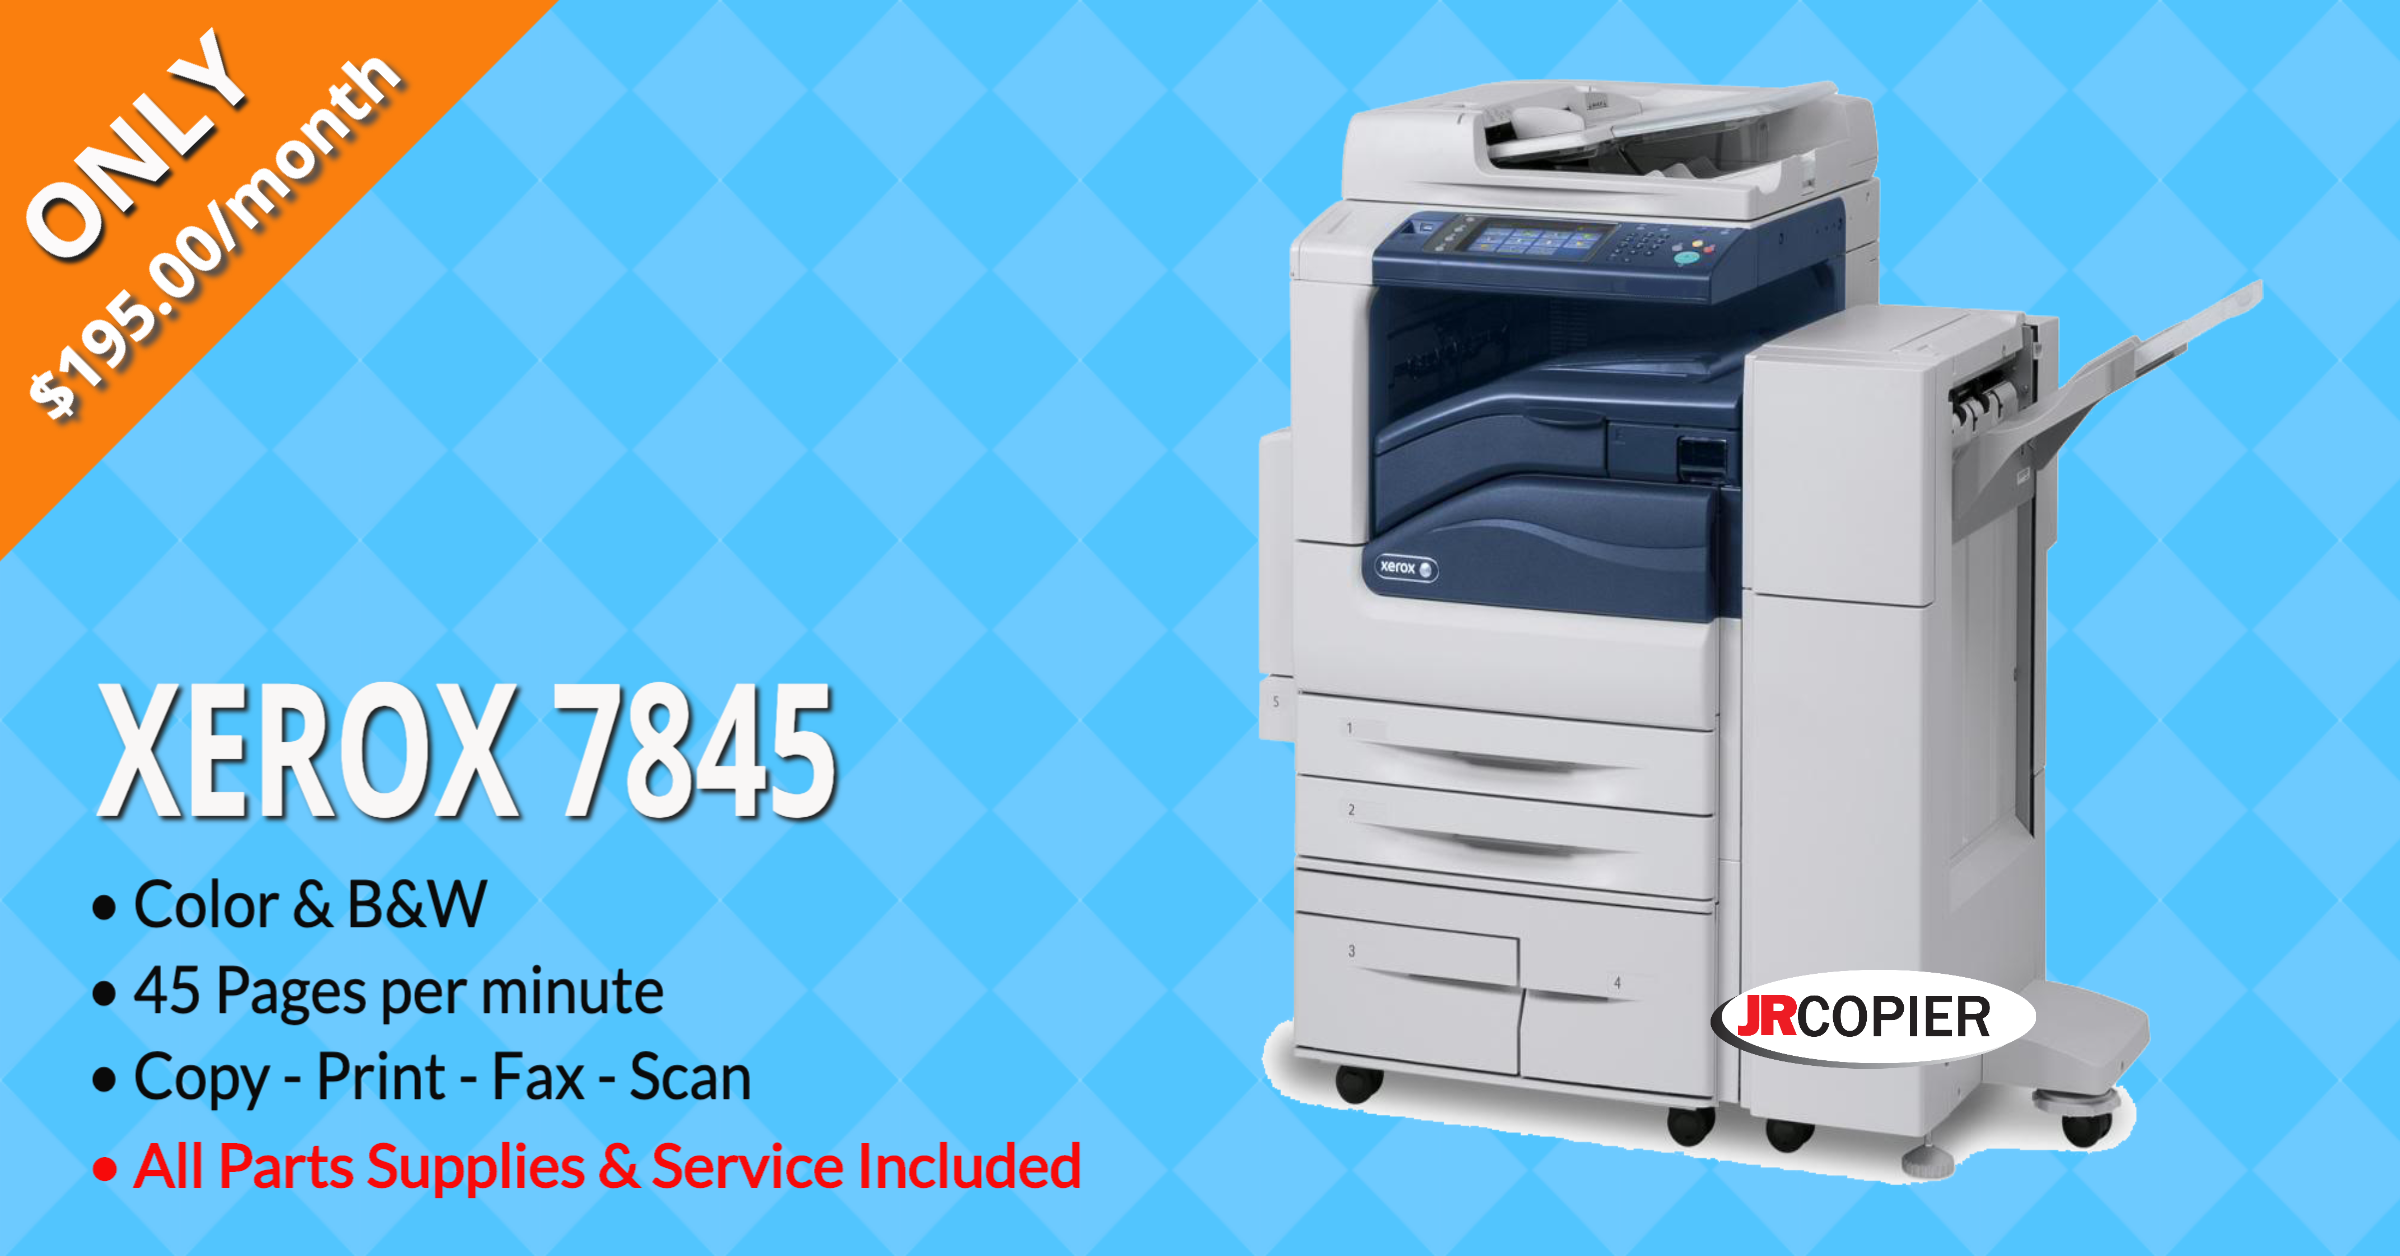 Multifunction Printer Sales 71446, 71459, 71496